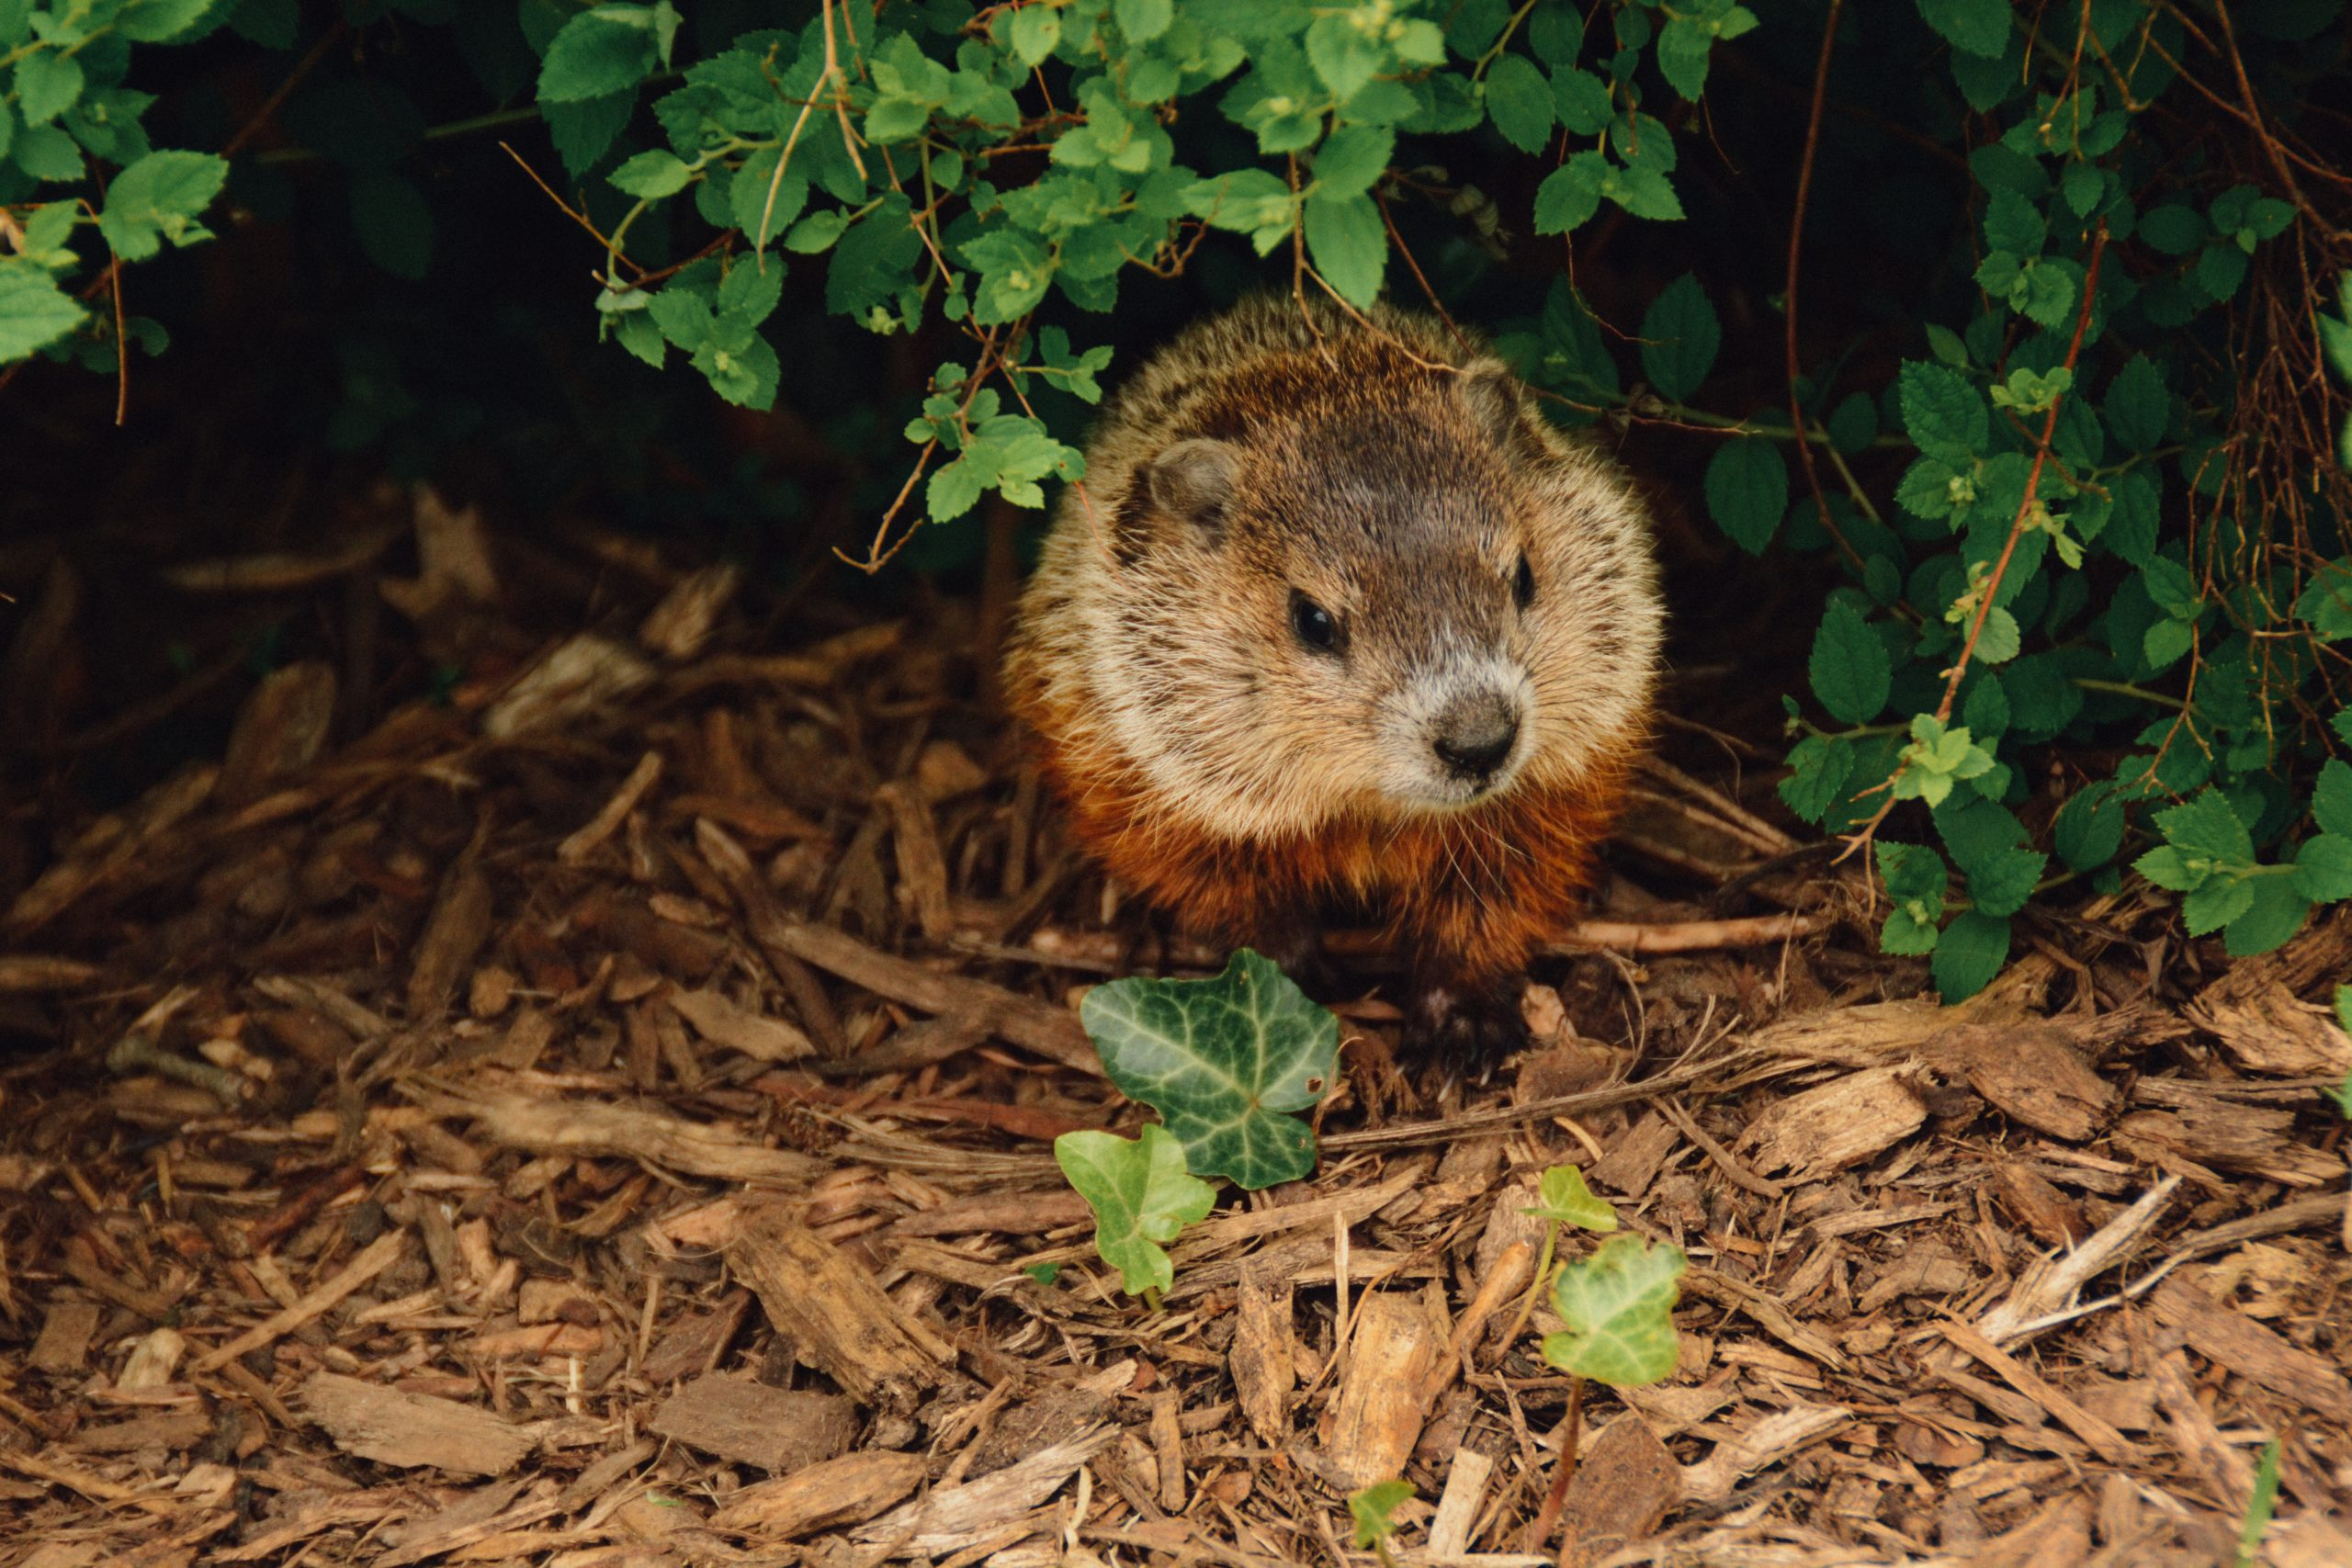 little groundhog peeking through bushes